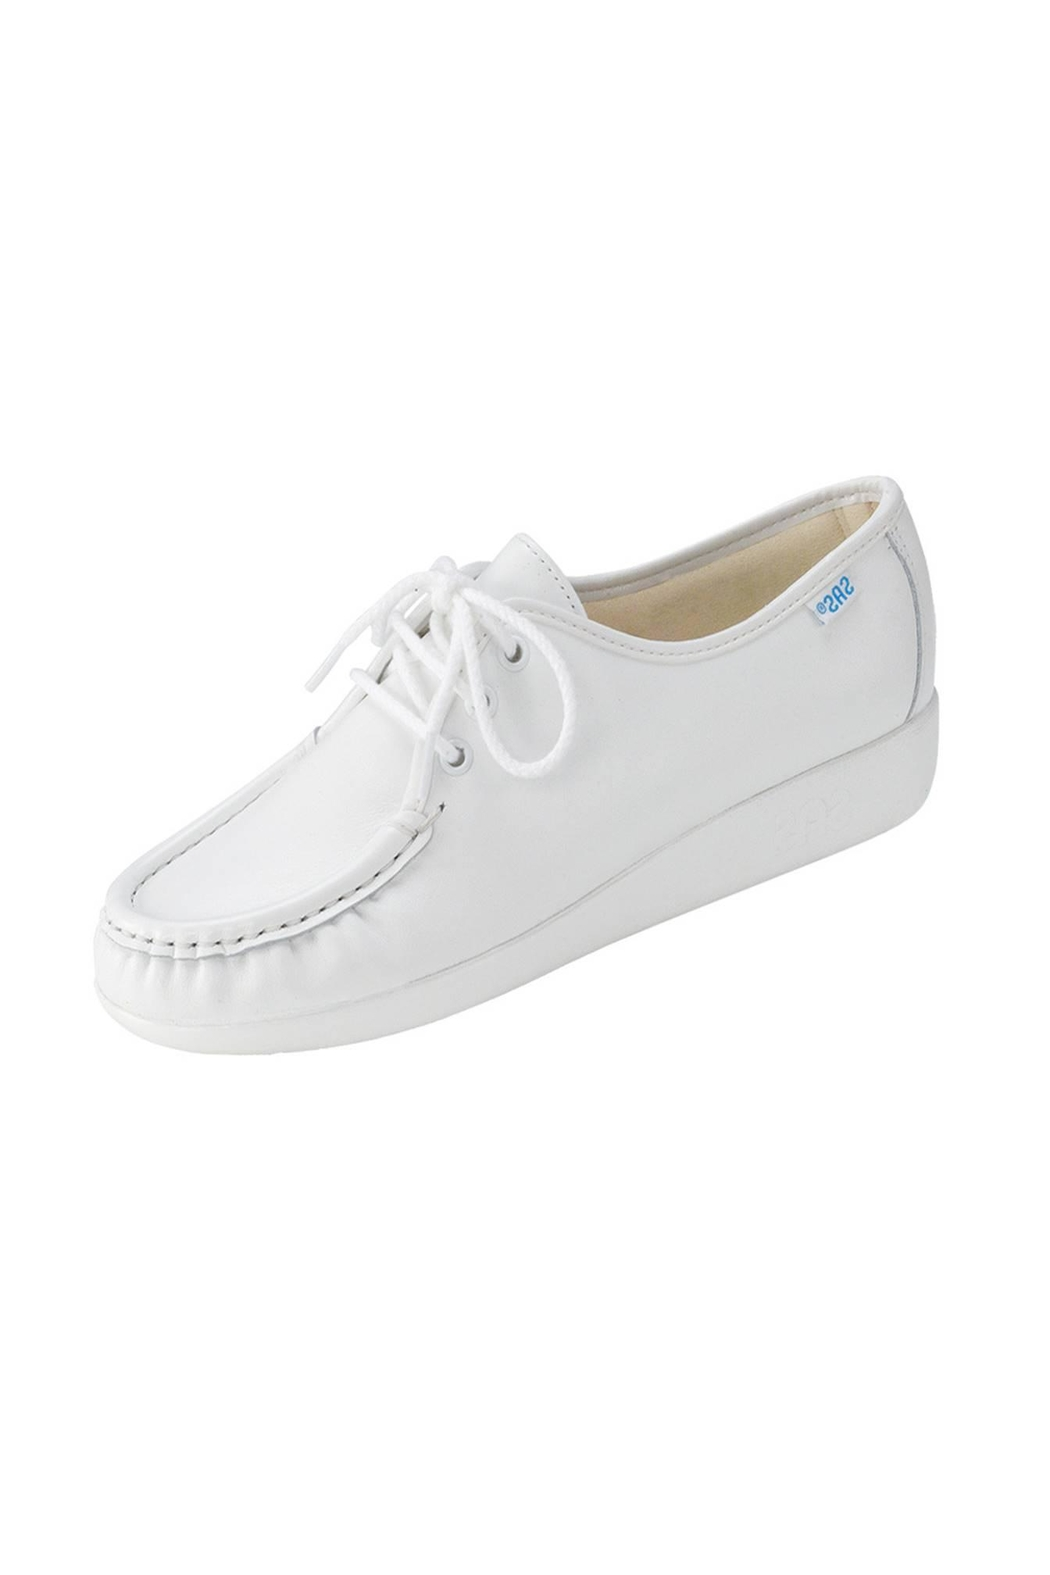 SAS Shoes Women's Siesta - Front Cropped Image